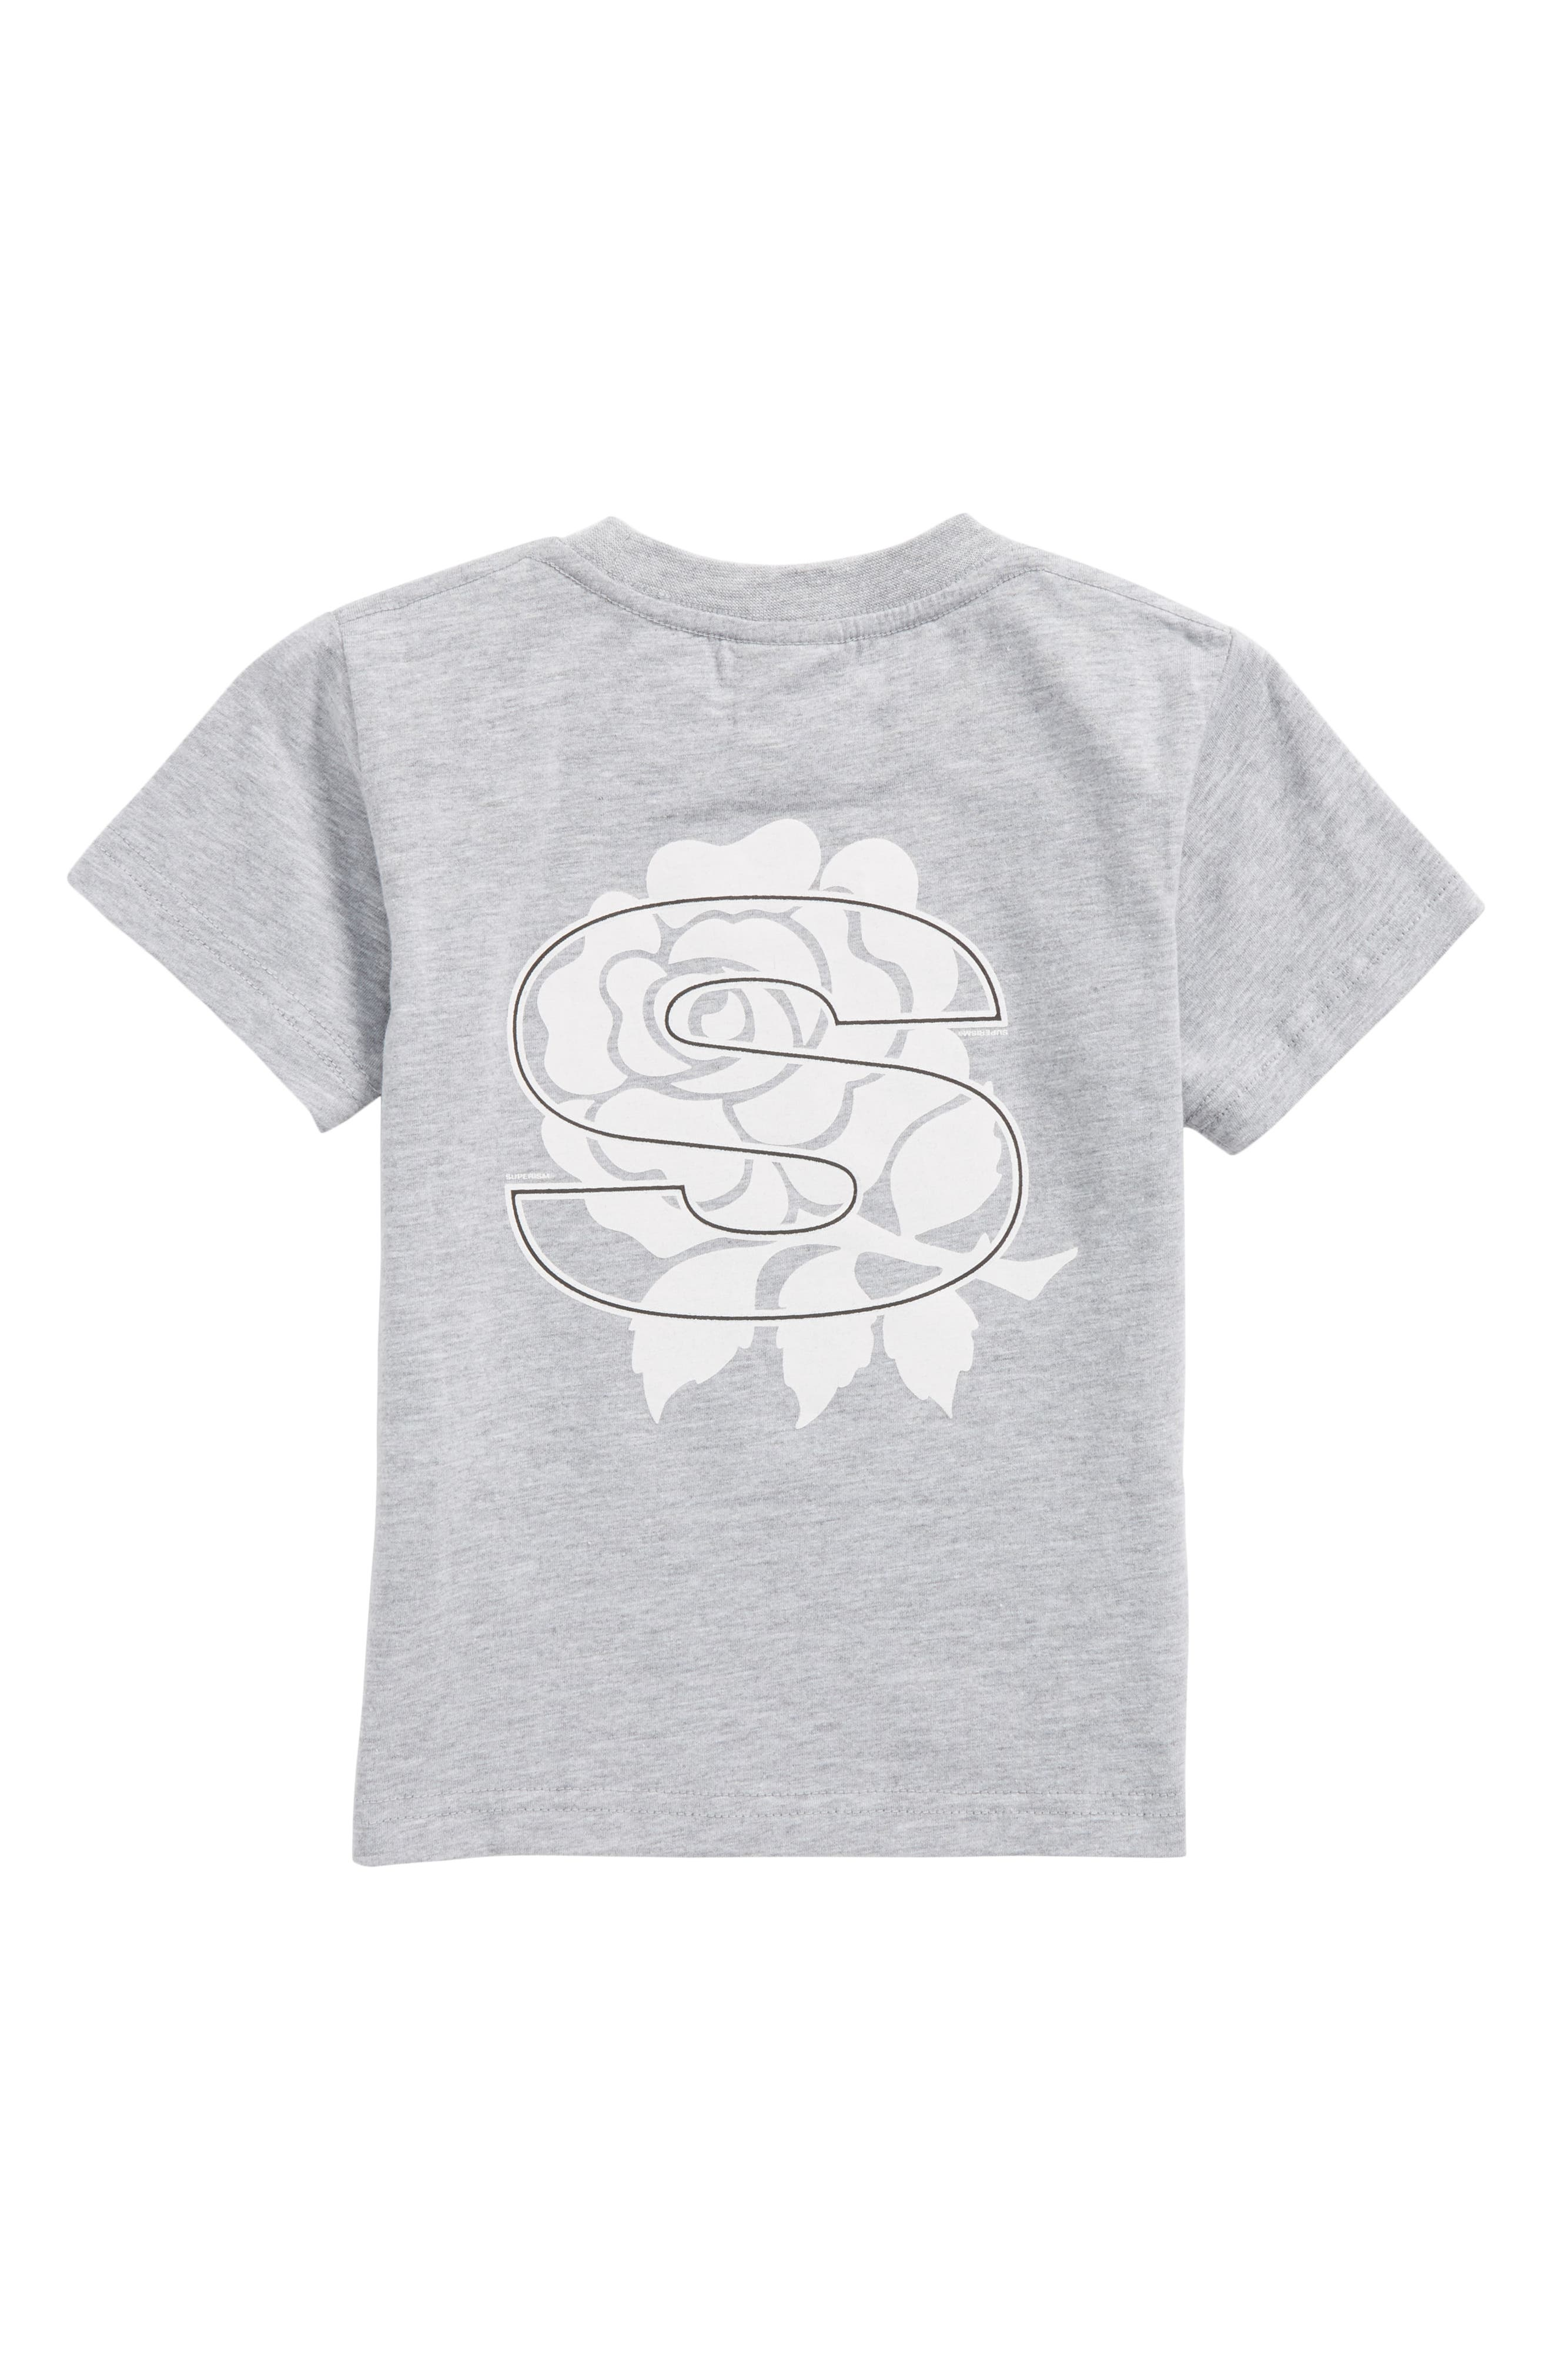 Rose Vision T-Shirt,                             Alternate thumbnail 2, color,                             Heather Grey